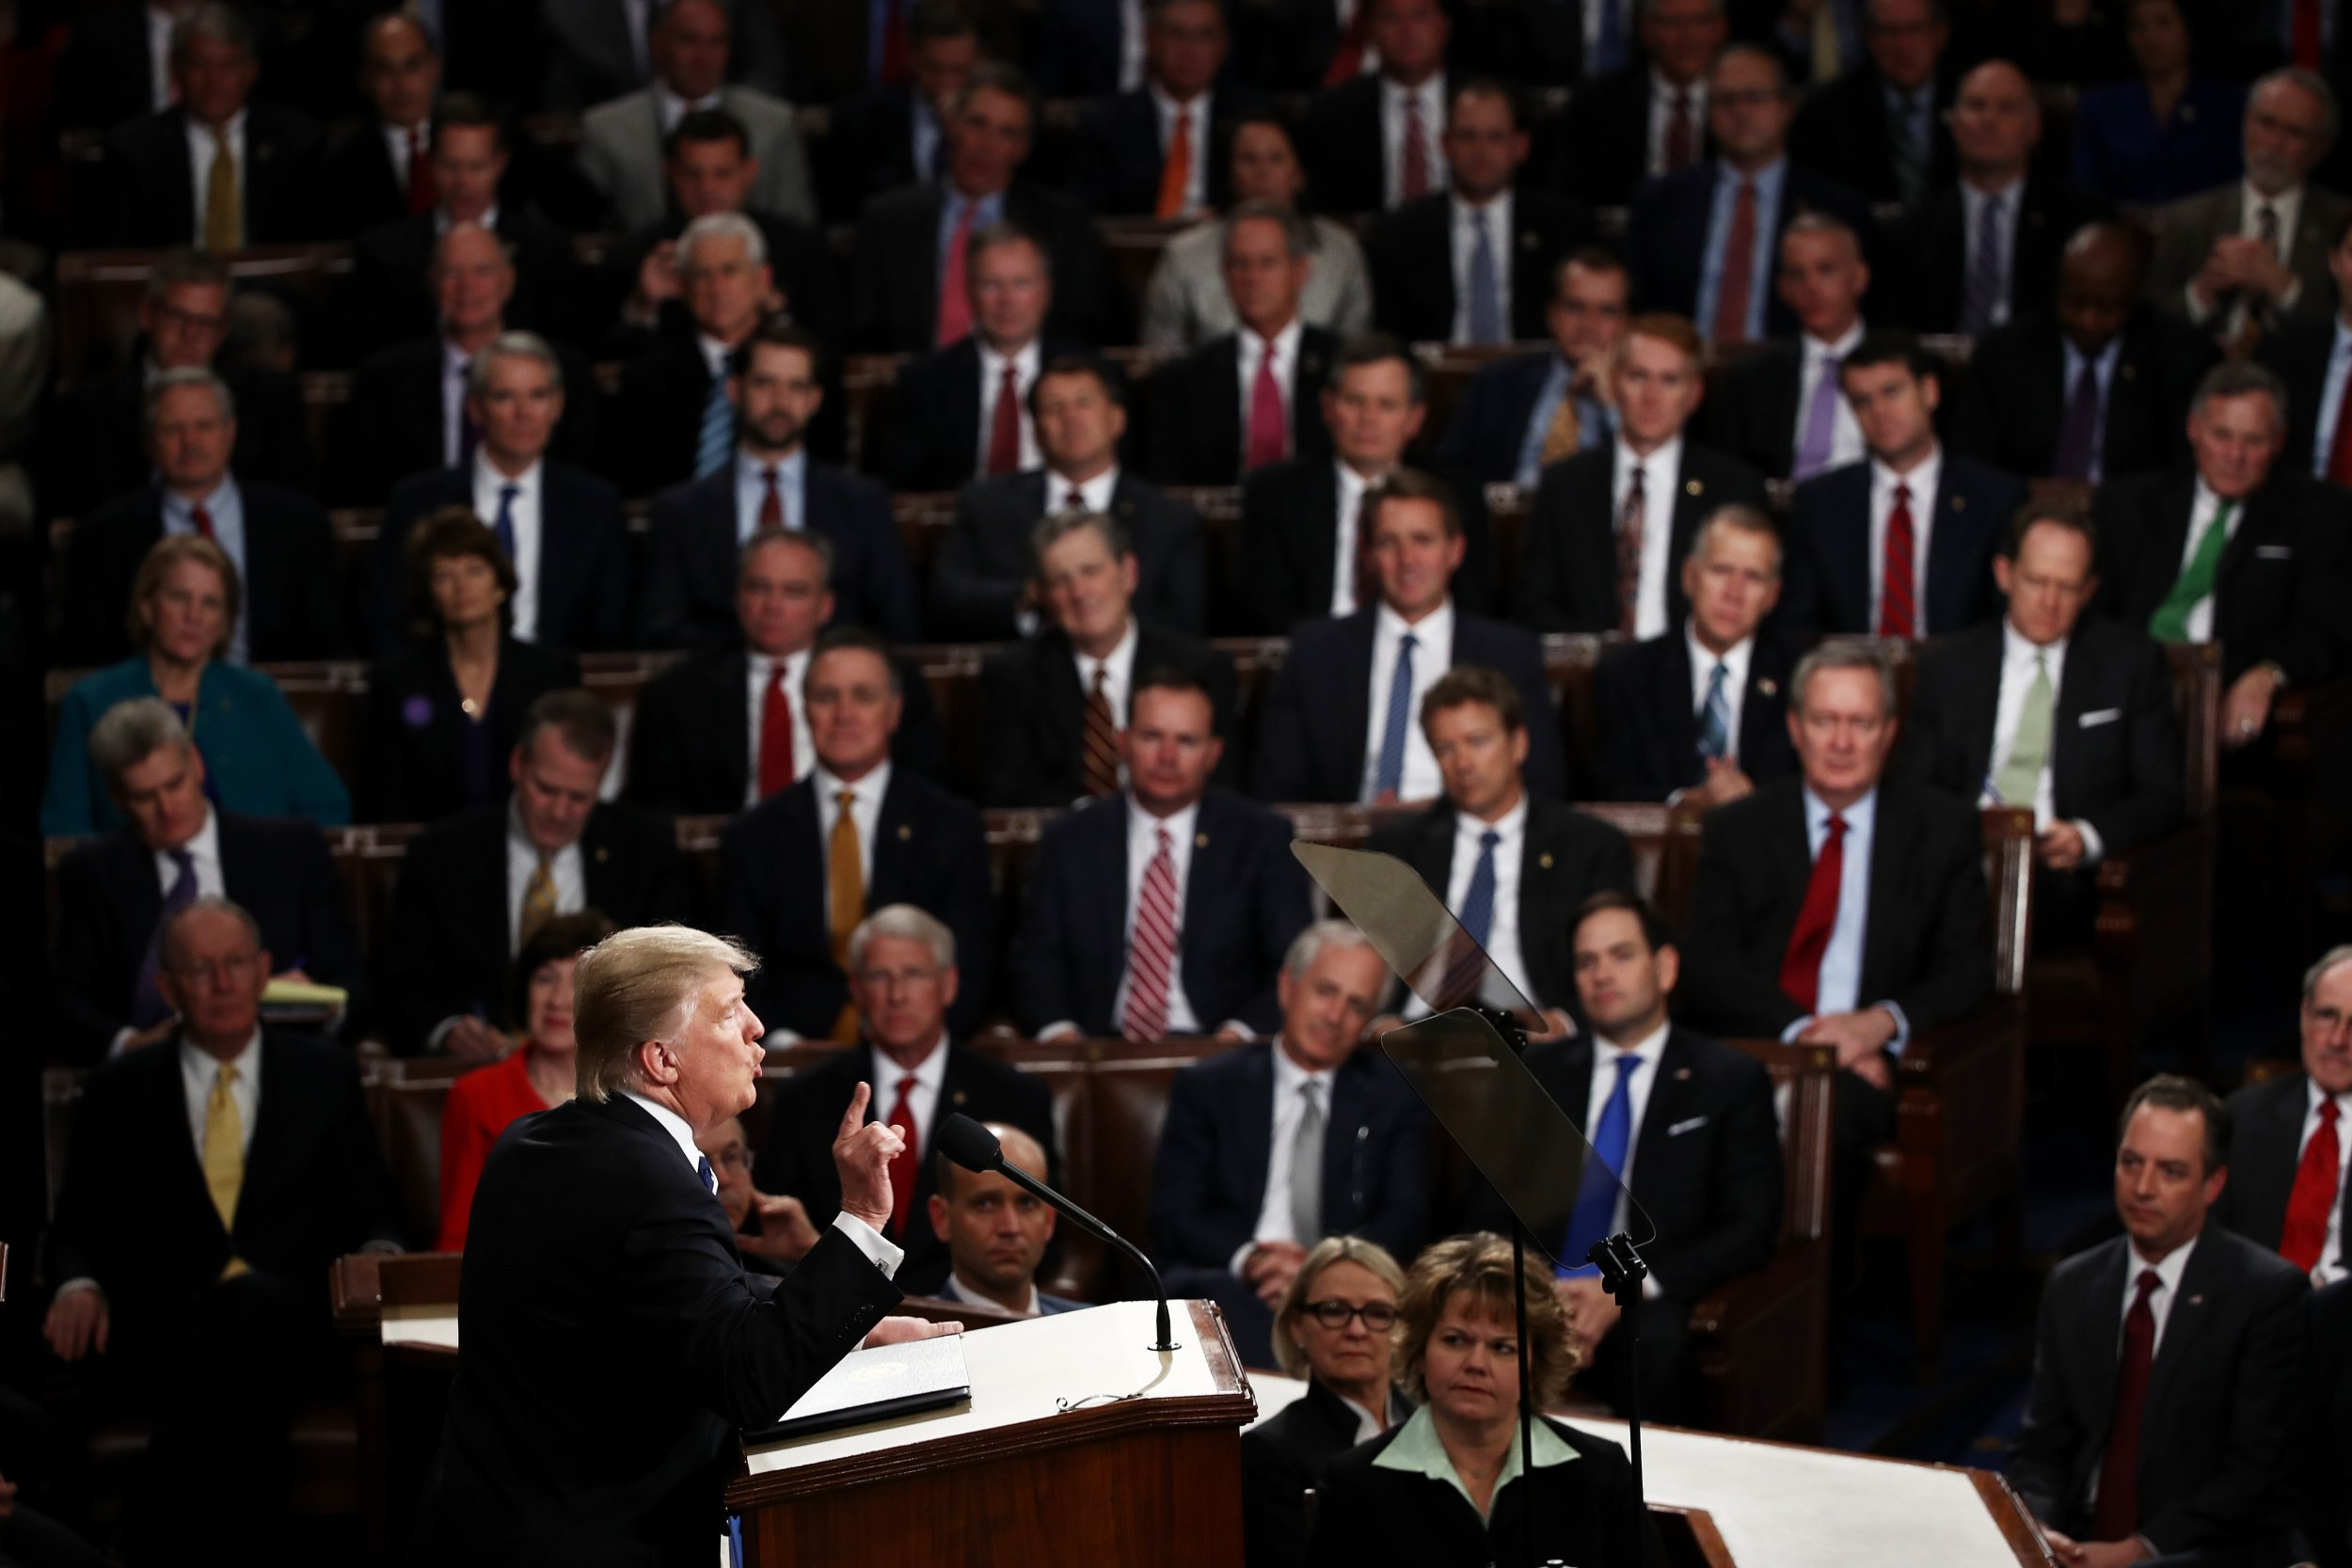 Donald Trump Congress joint address